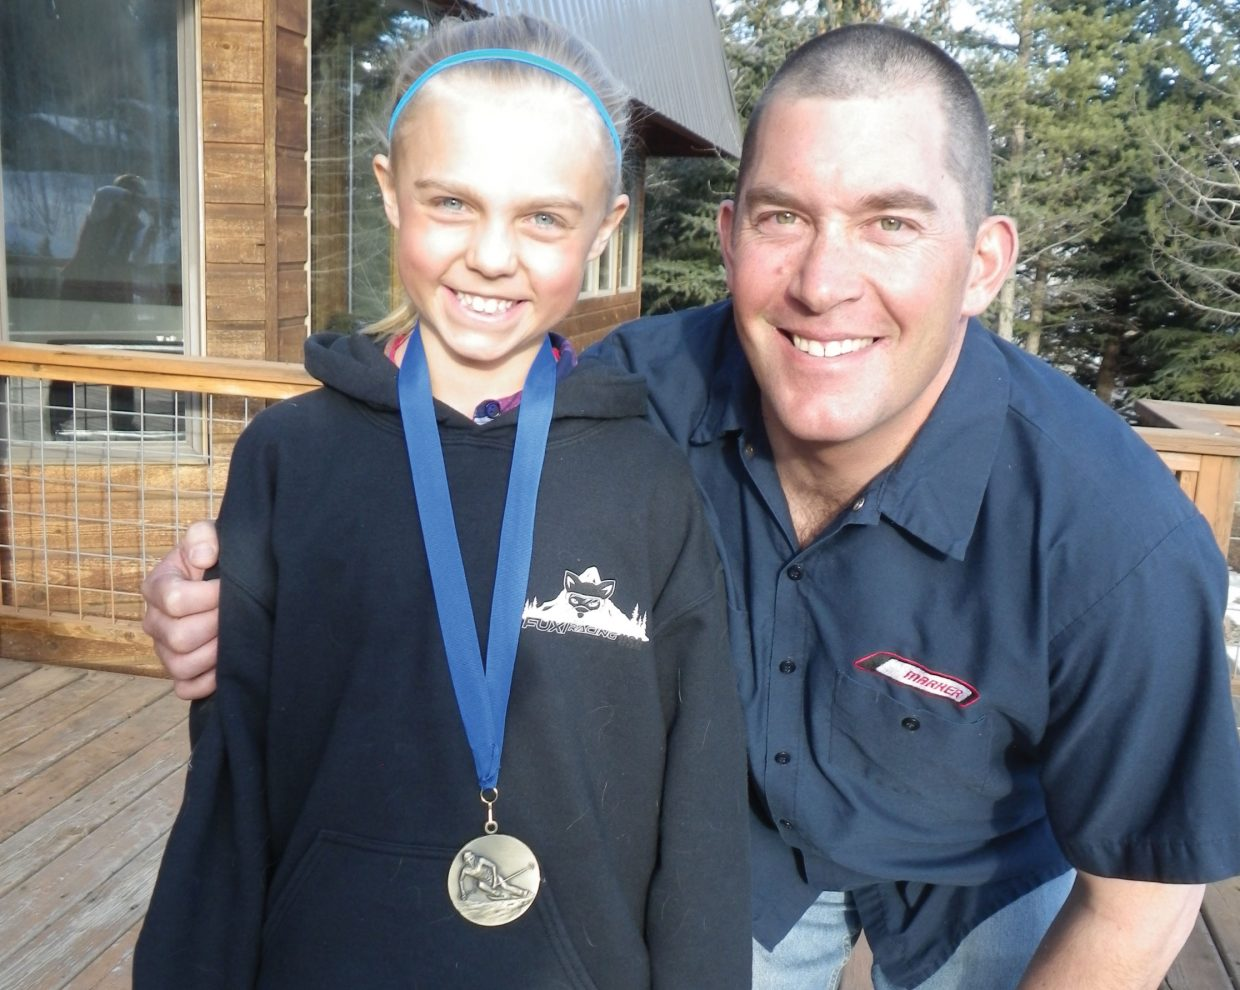 Coach Chris Puckett, sporting a new hairdo, poses for a photo with Riley Smith who won the girls slalom race at the J5 Rocky Mountain Division Finale on March 11 in Powderhorn. Riley got a medal for her performance and the chance to shave her coach's head, as well.